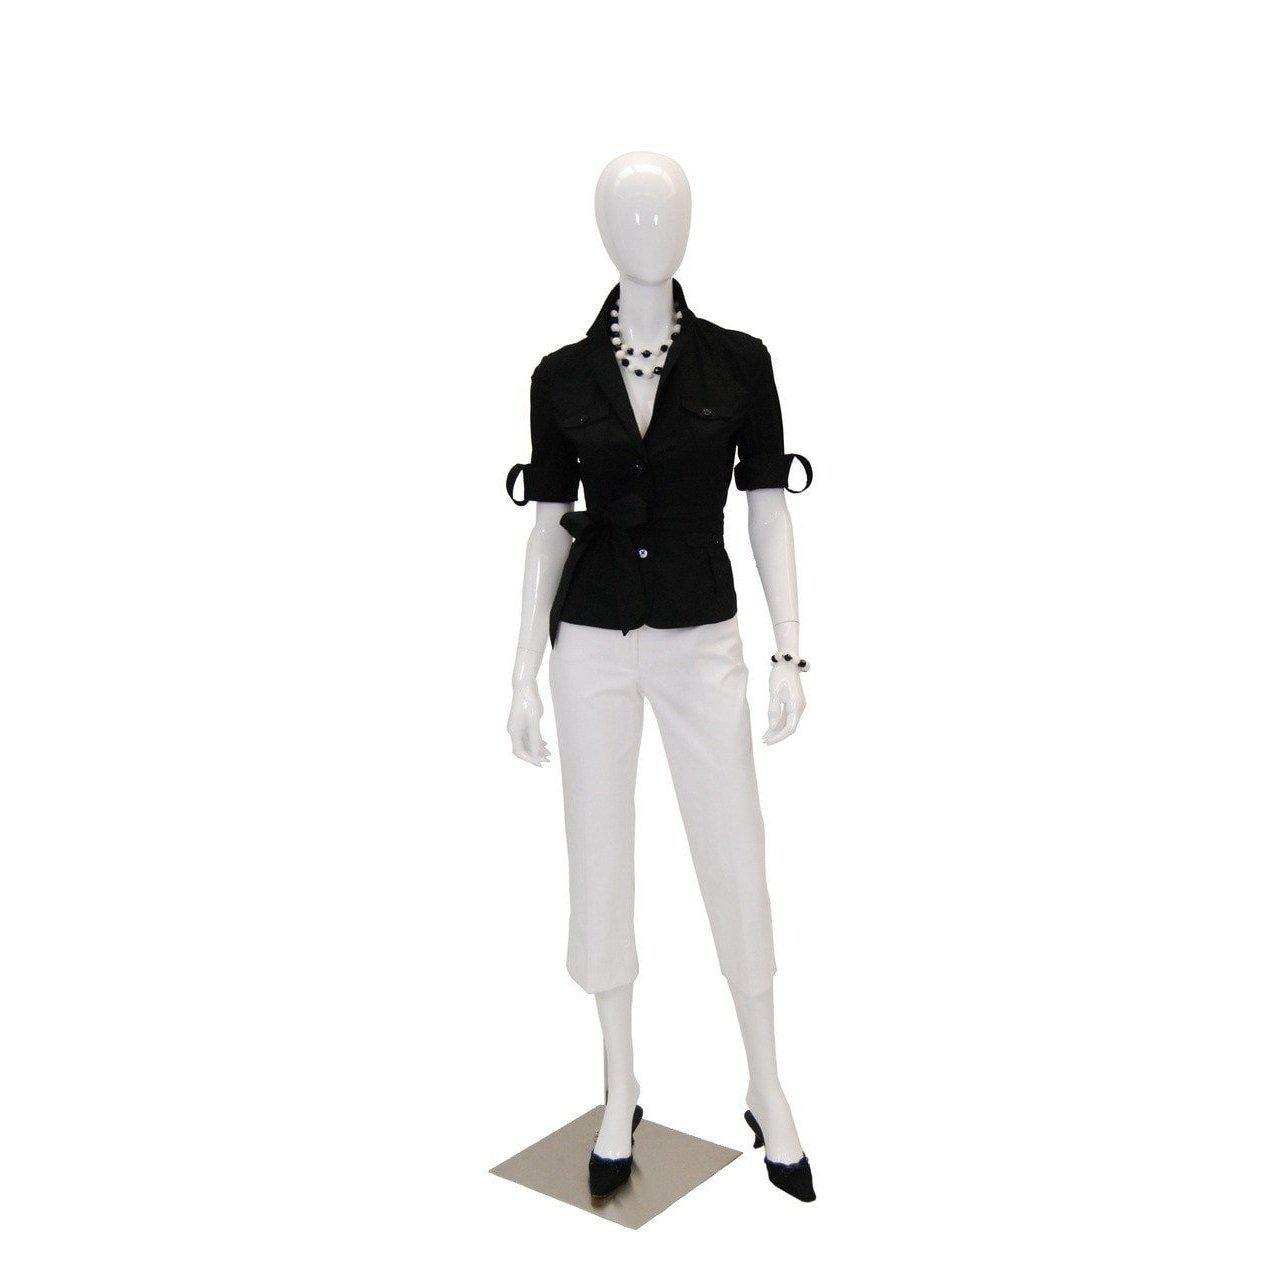 Best Seller Abstract Female Mannequin MM-A3W1 For Fashion Stores and Retail Shops